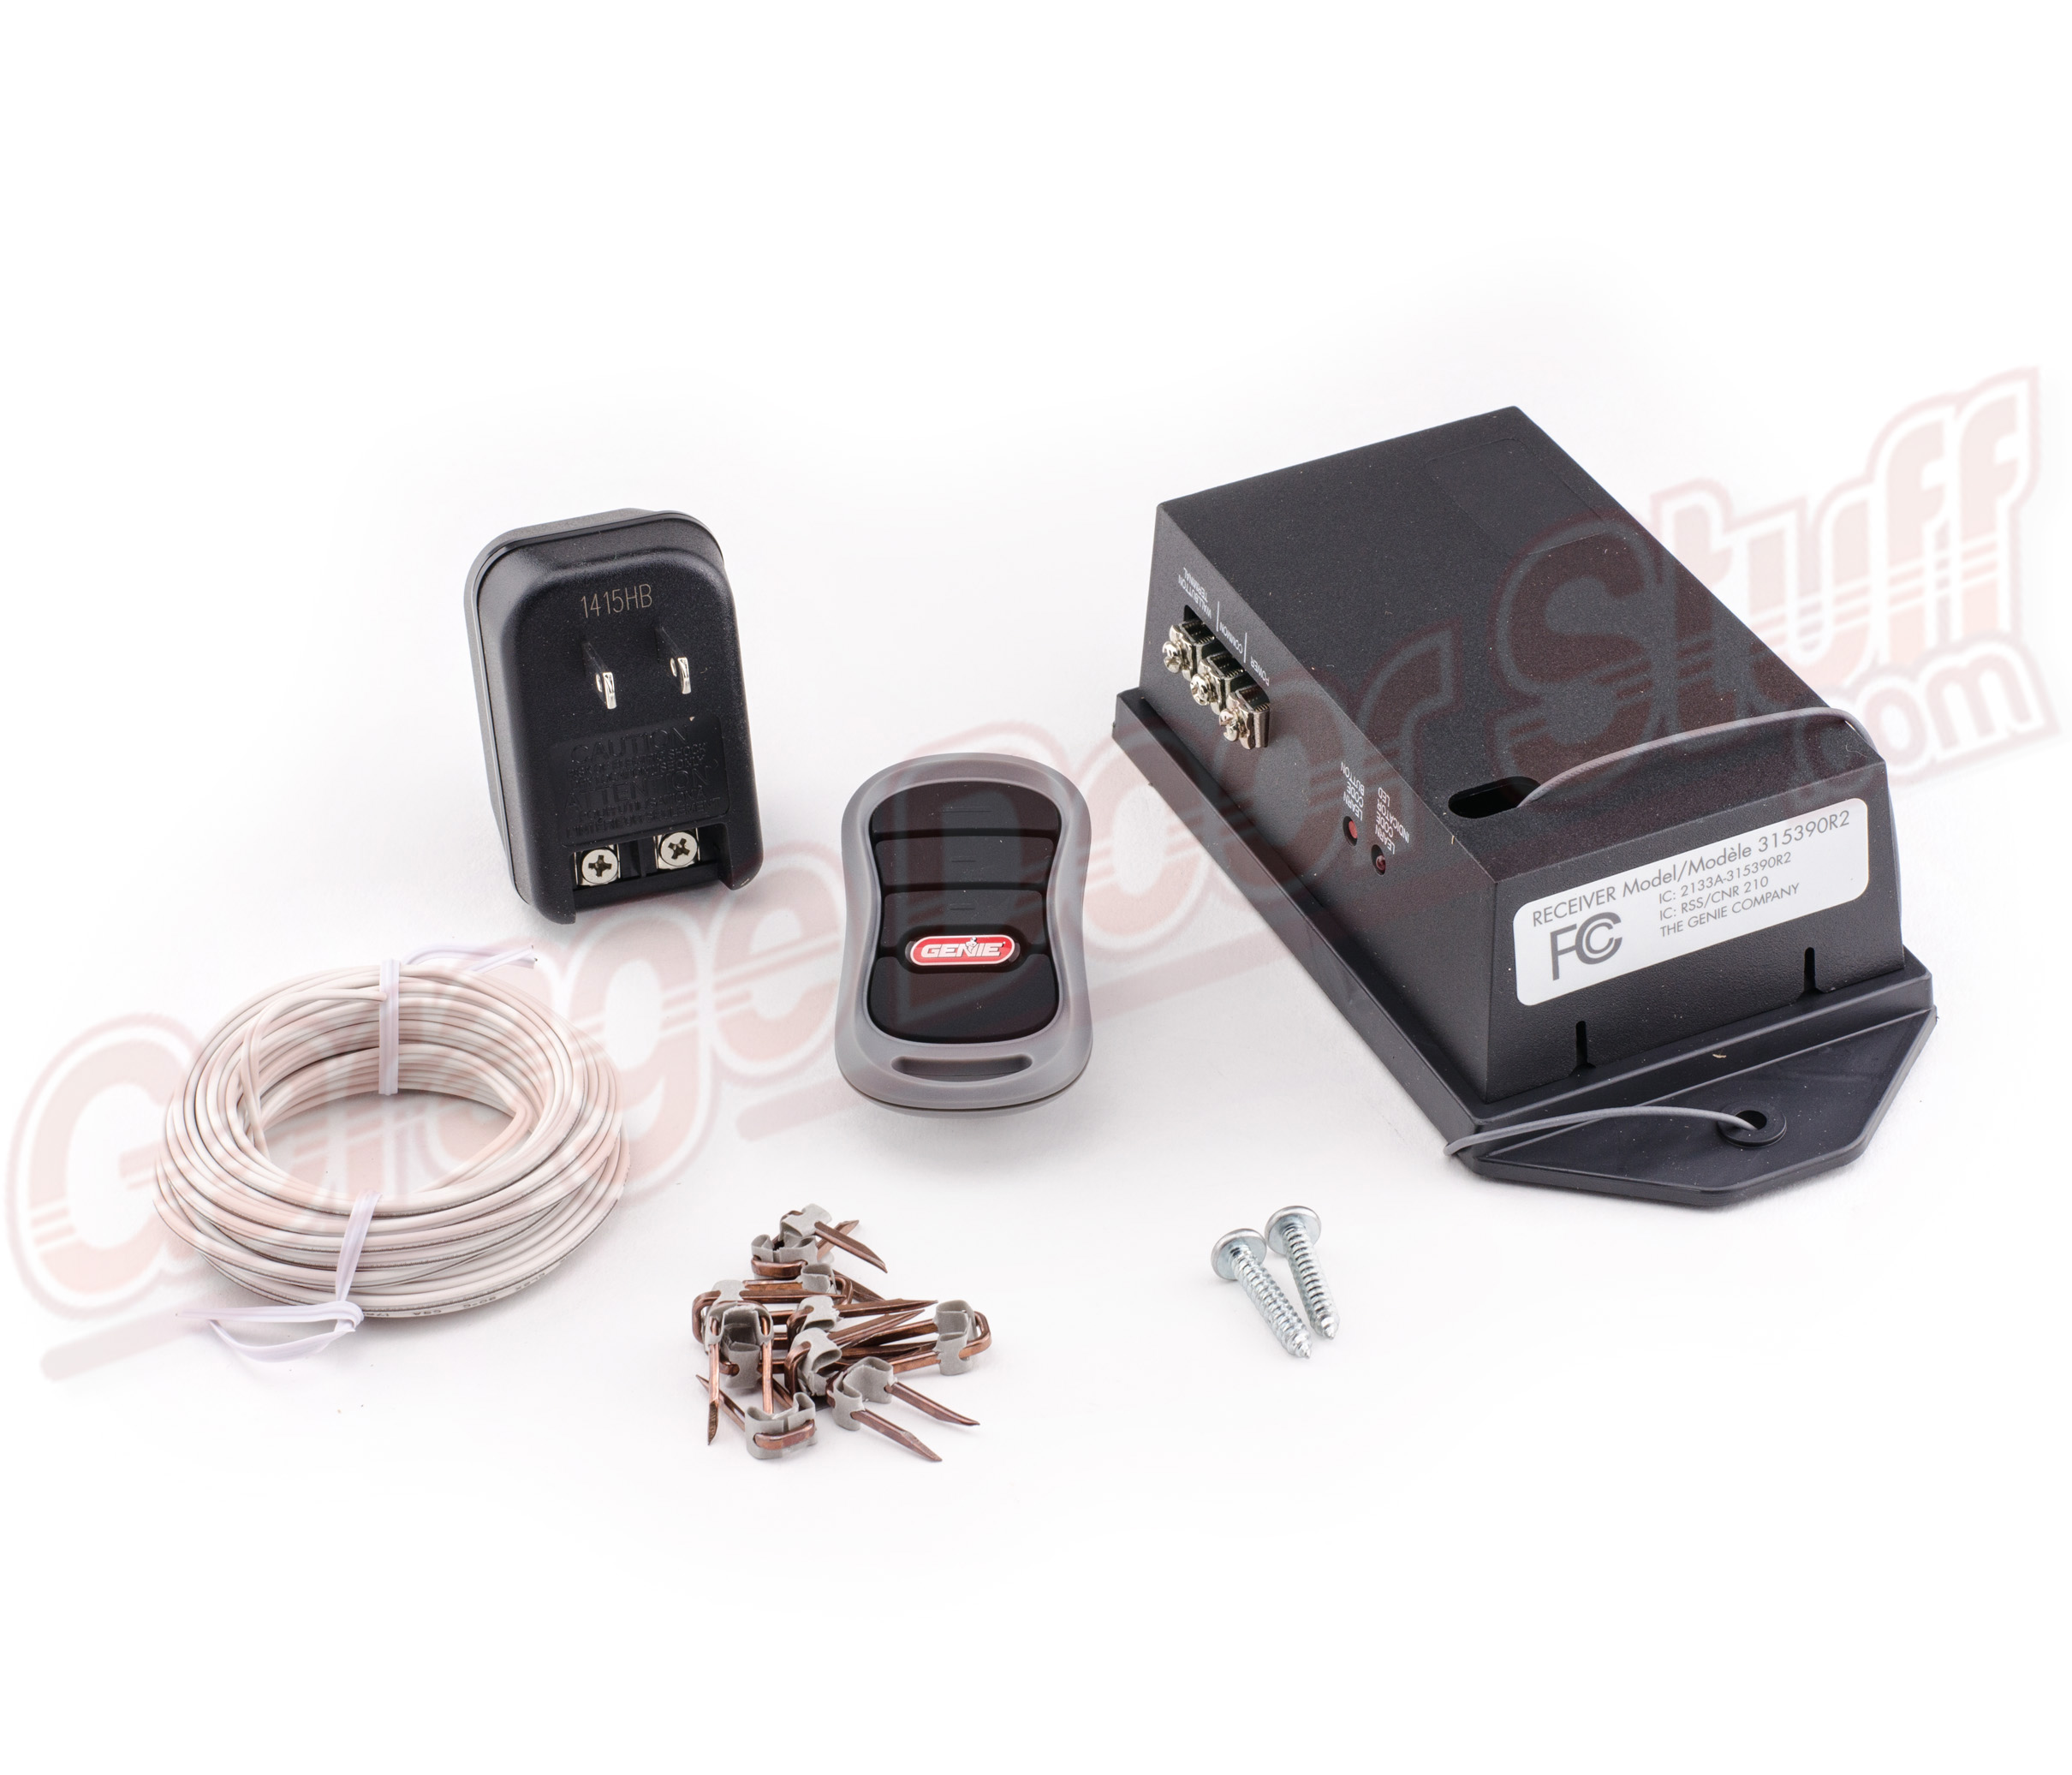 Genie Girud 1t Garage Opener Remote Amp Receiver Conversion Kit